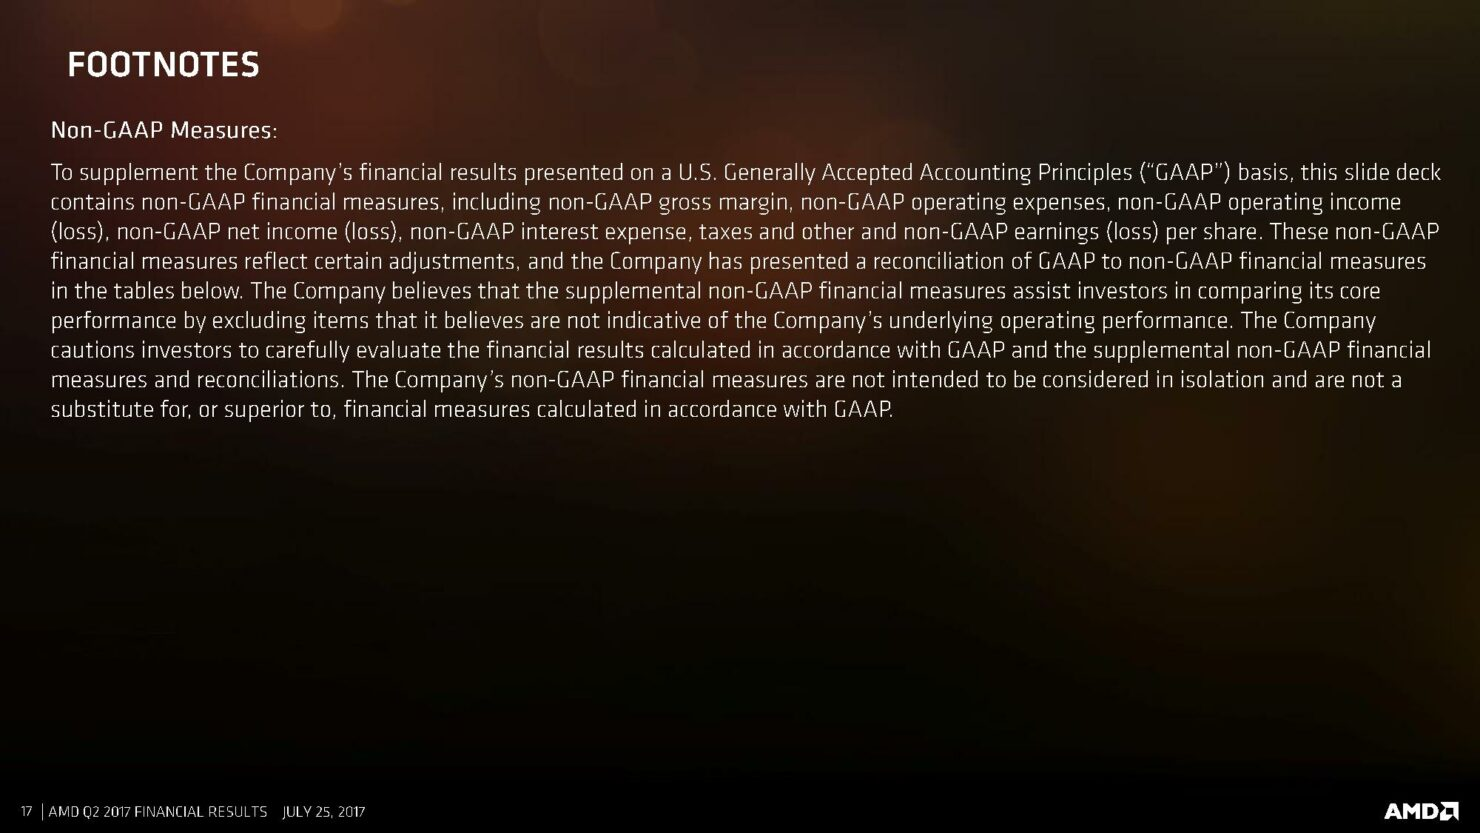 amd-cfo-commentary-slides-q2-17-page-017